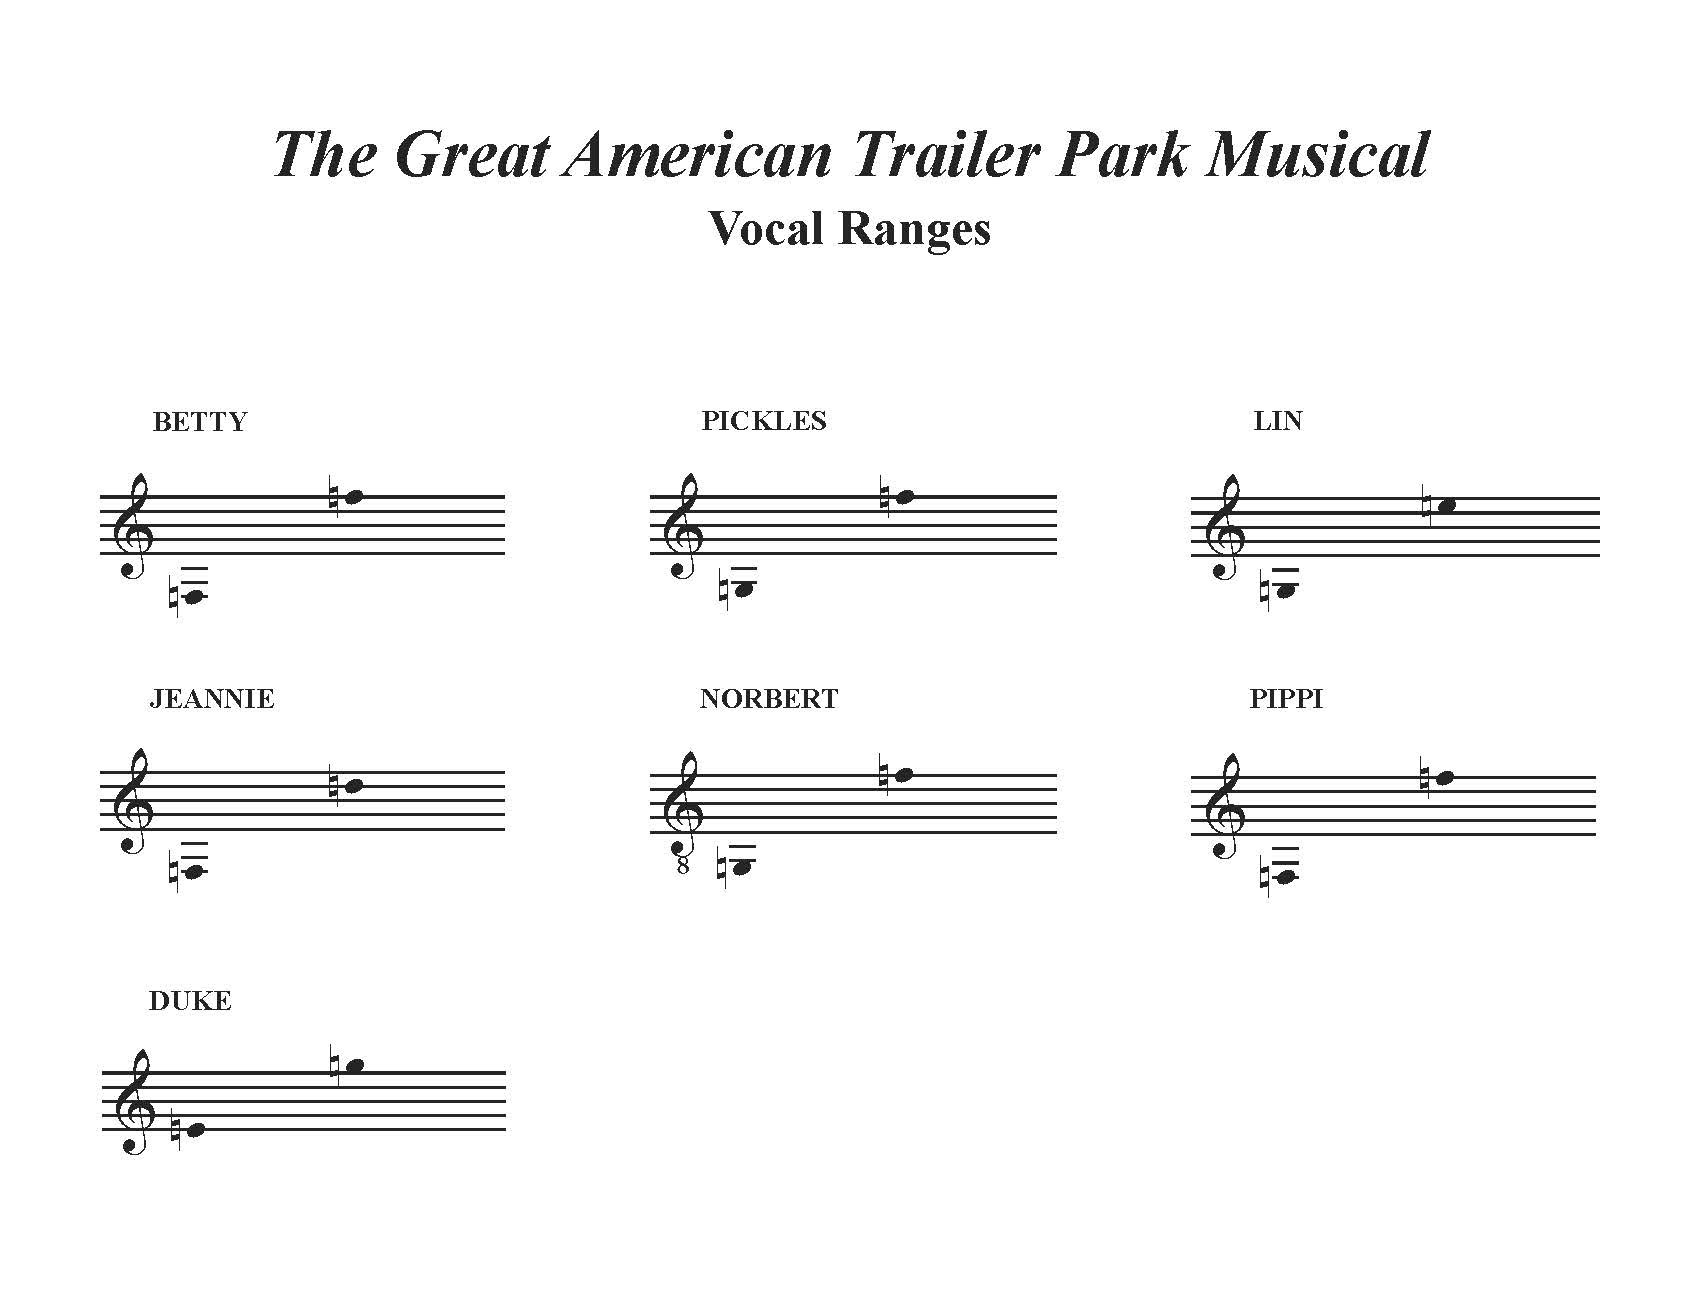 The Great American Trailer Park Musical Vocal Ranges